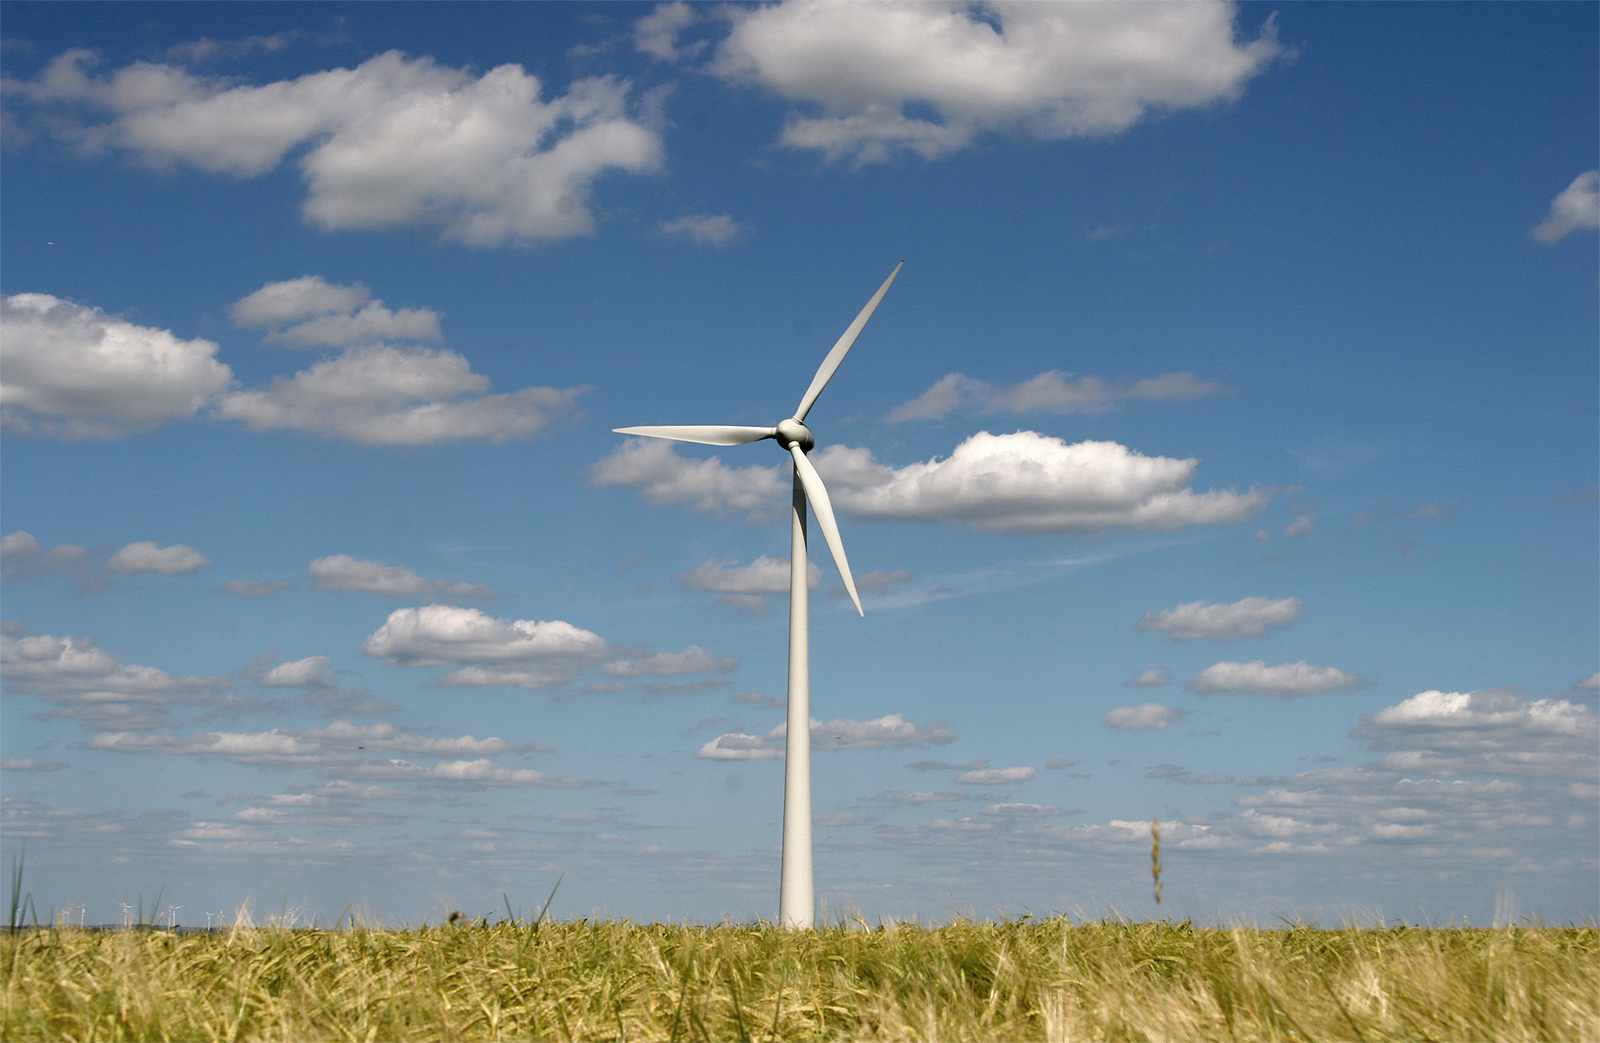 http://upload.wikimedia.org/wikipedia/commons/e/e0/Windenergy.jpg